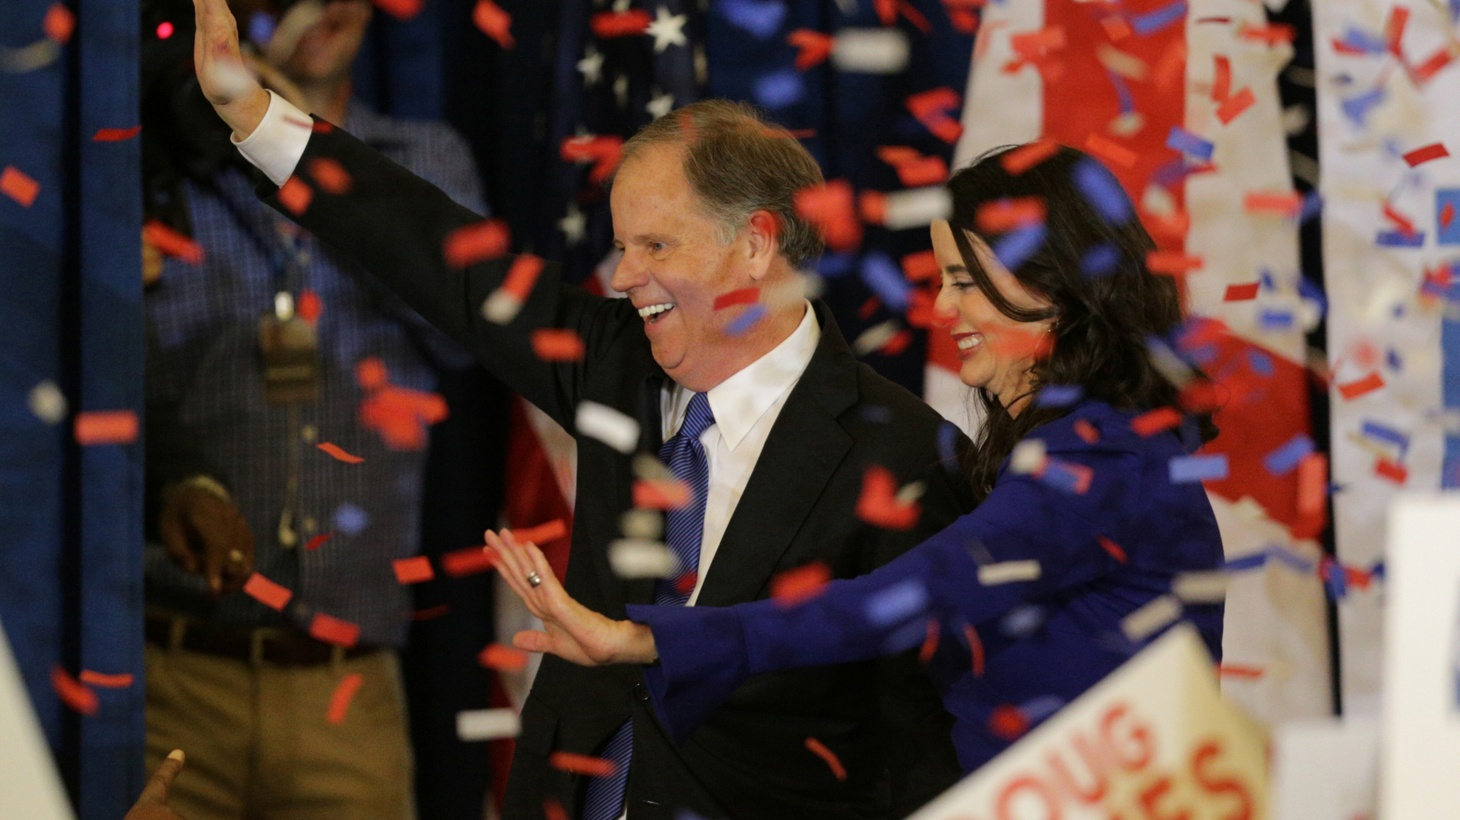 President Trump and some Republicans were licking their wounds after Democrat Doug Jones' stunning upset in Alabama's race for the US Senate. But others were positively relieved. Conservatives openly disagree about how much character counts.